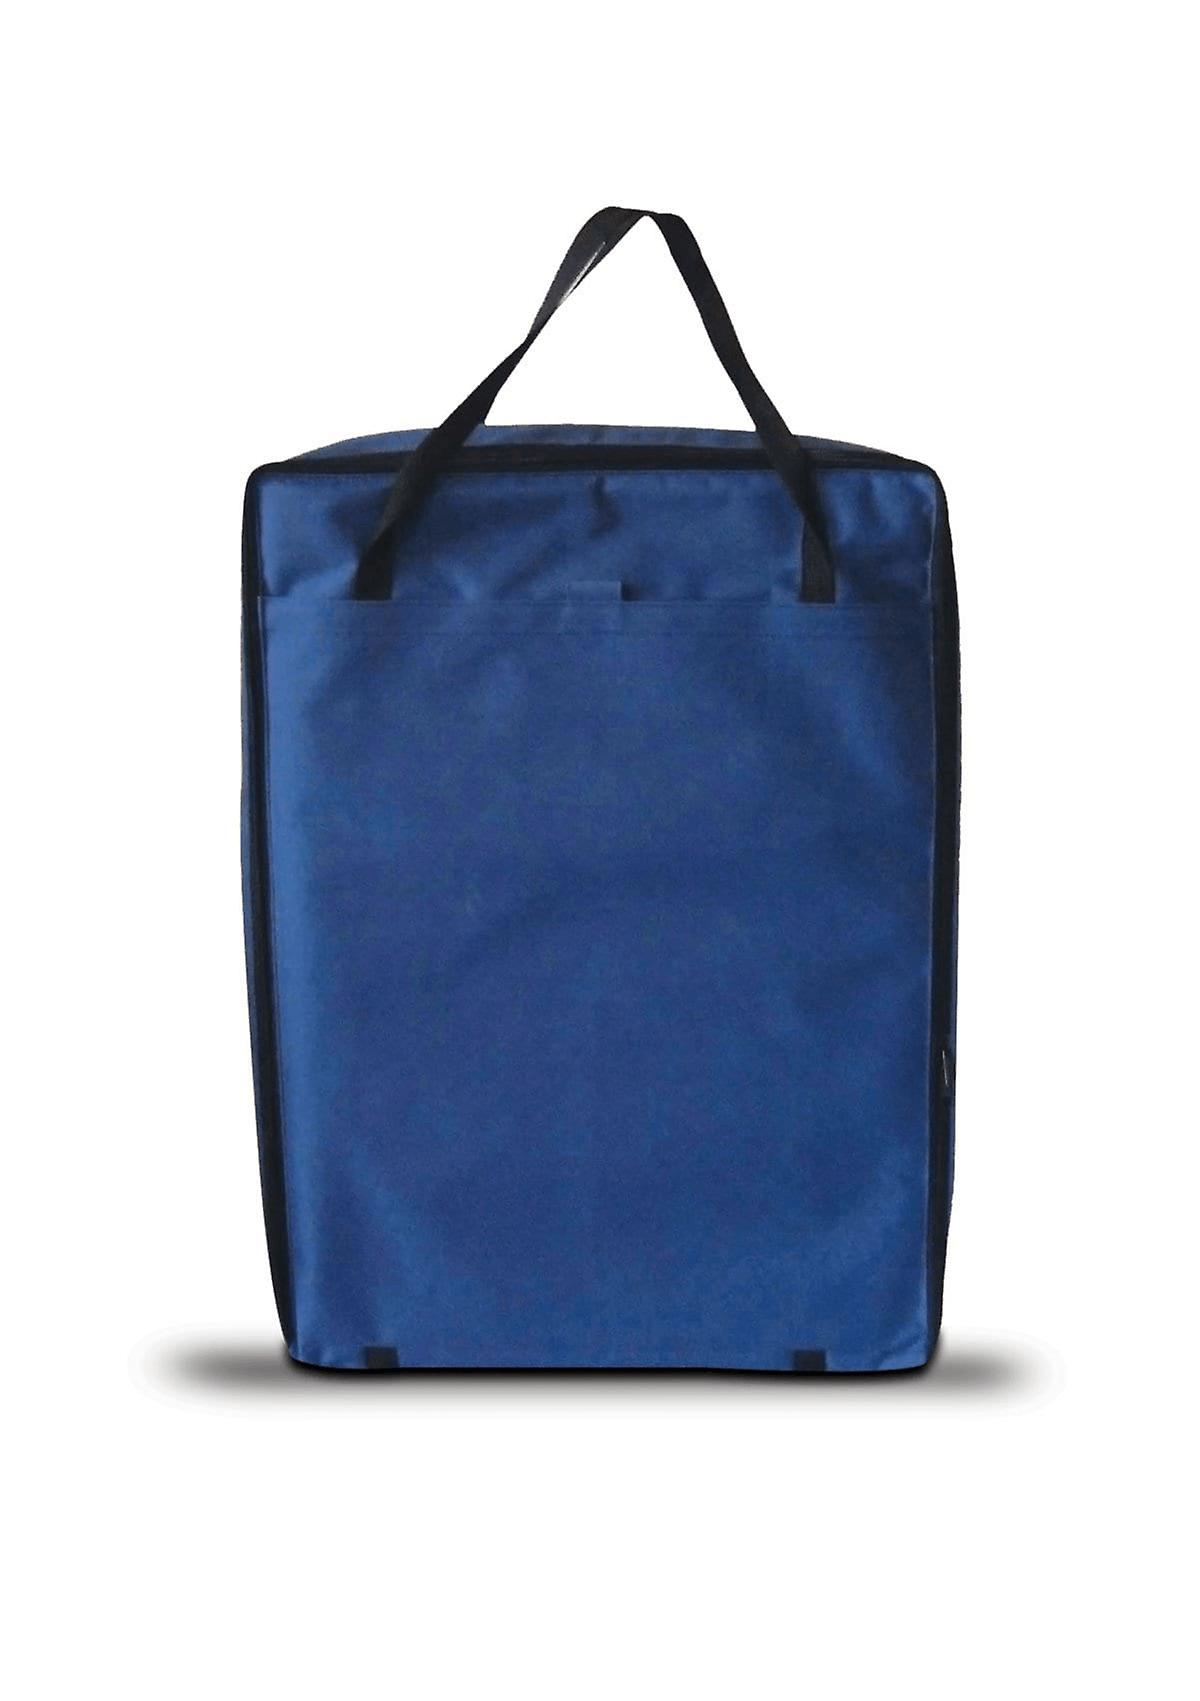 """OLPRO 22"""" TV Storage Bag Blue Padded for Flat Screen TVs with Pocket for Cables"""